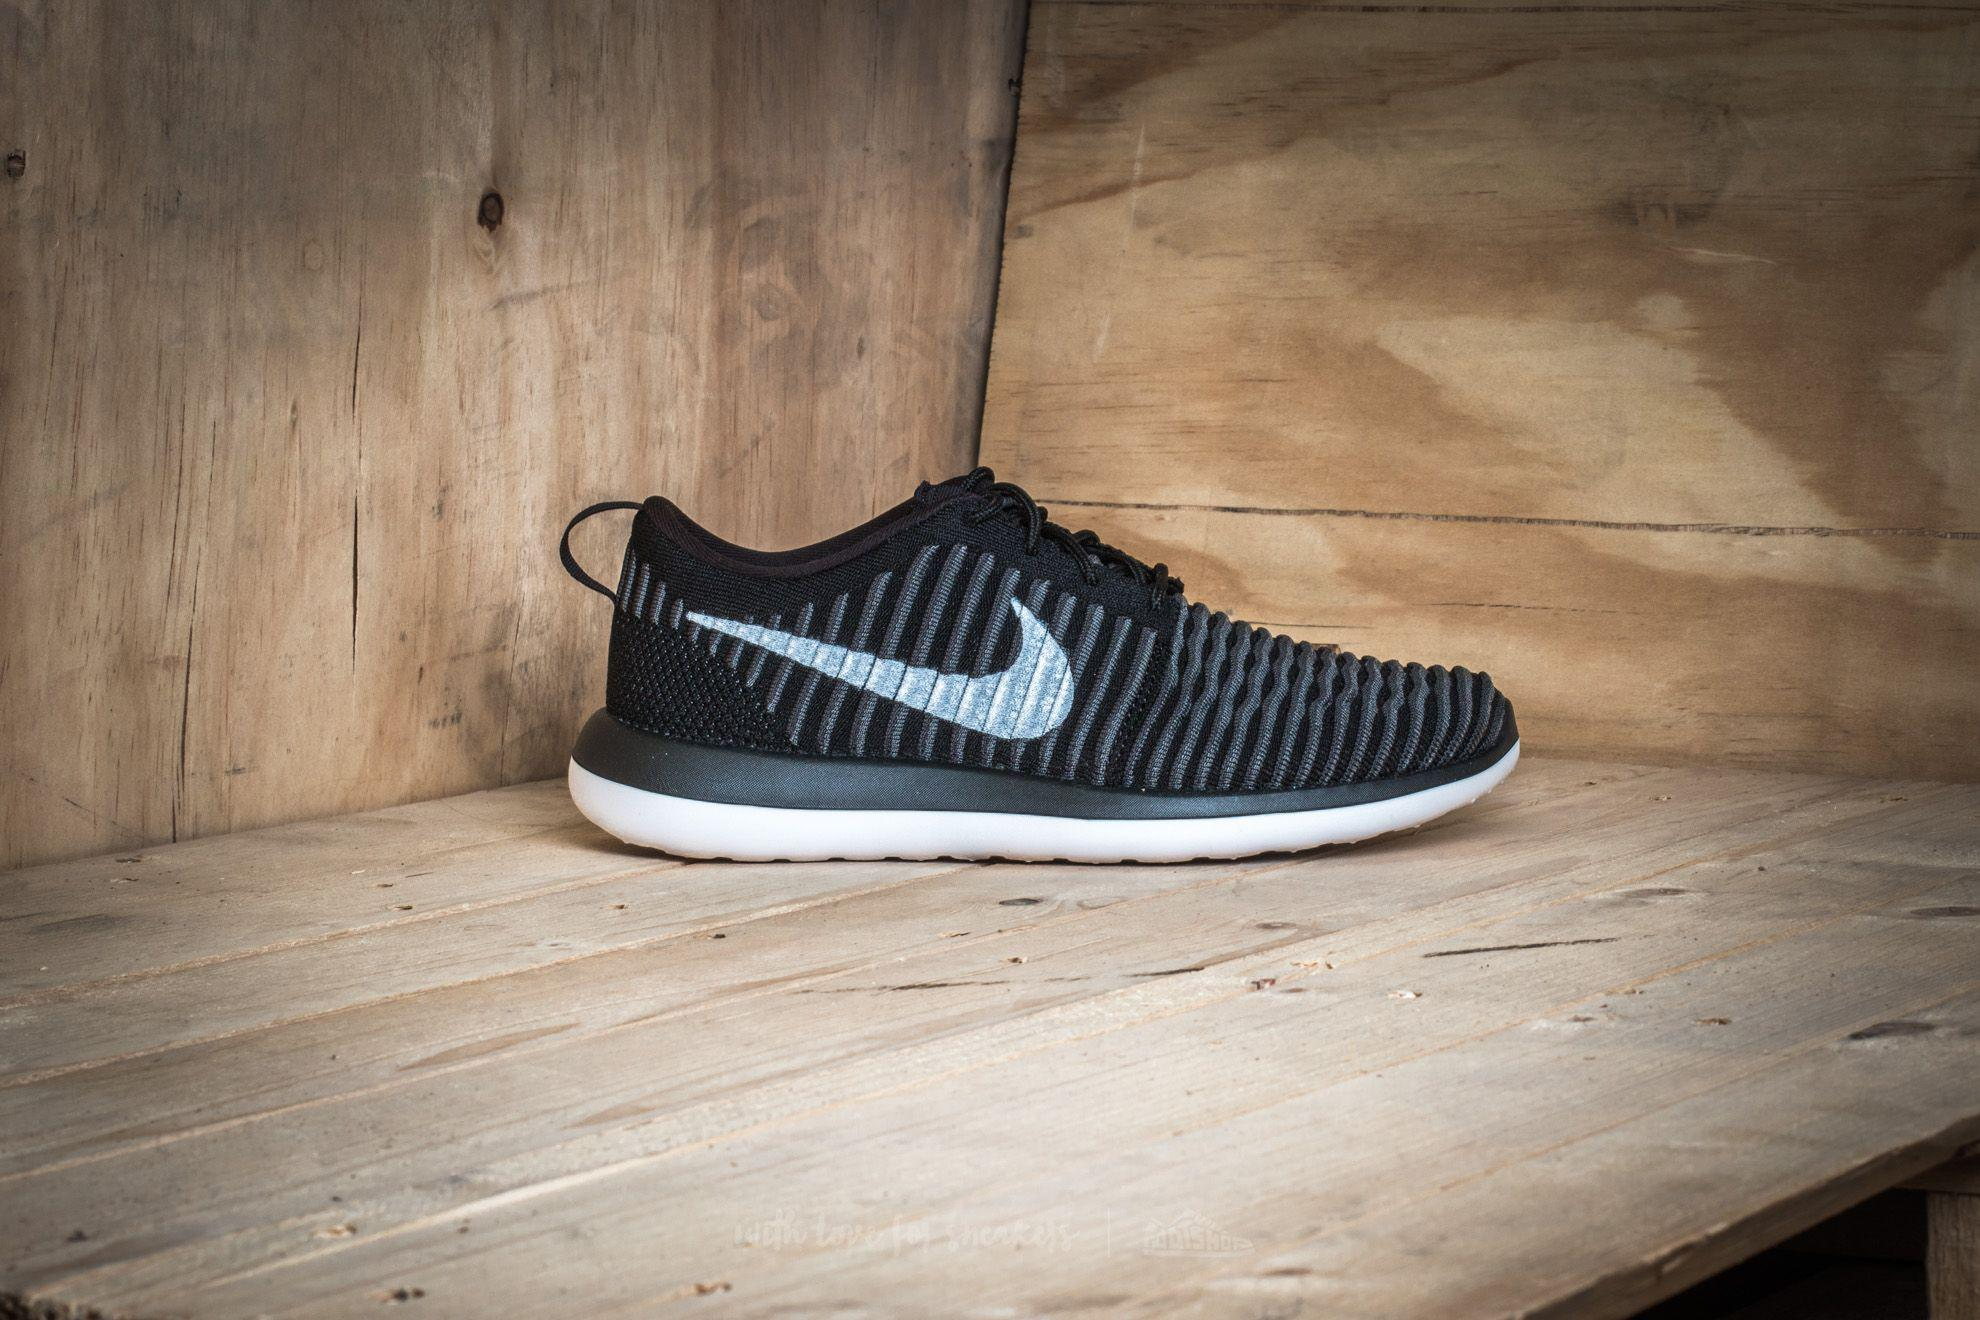 quality design 8e1c3 bf1ce Lyst - Nike Roshe Two Flyknit (gs) Black  White-anthracite-dark Grey ...